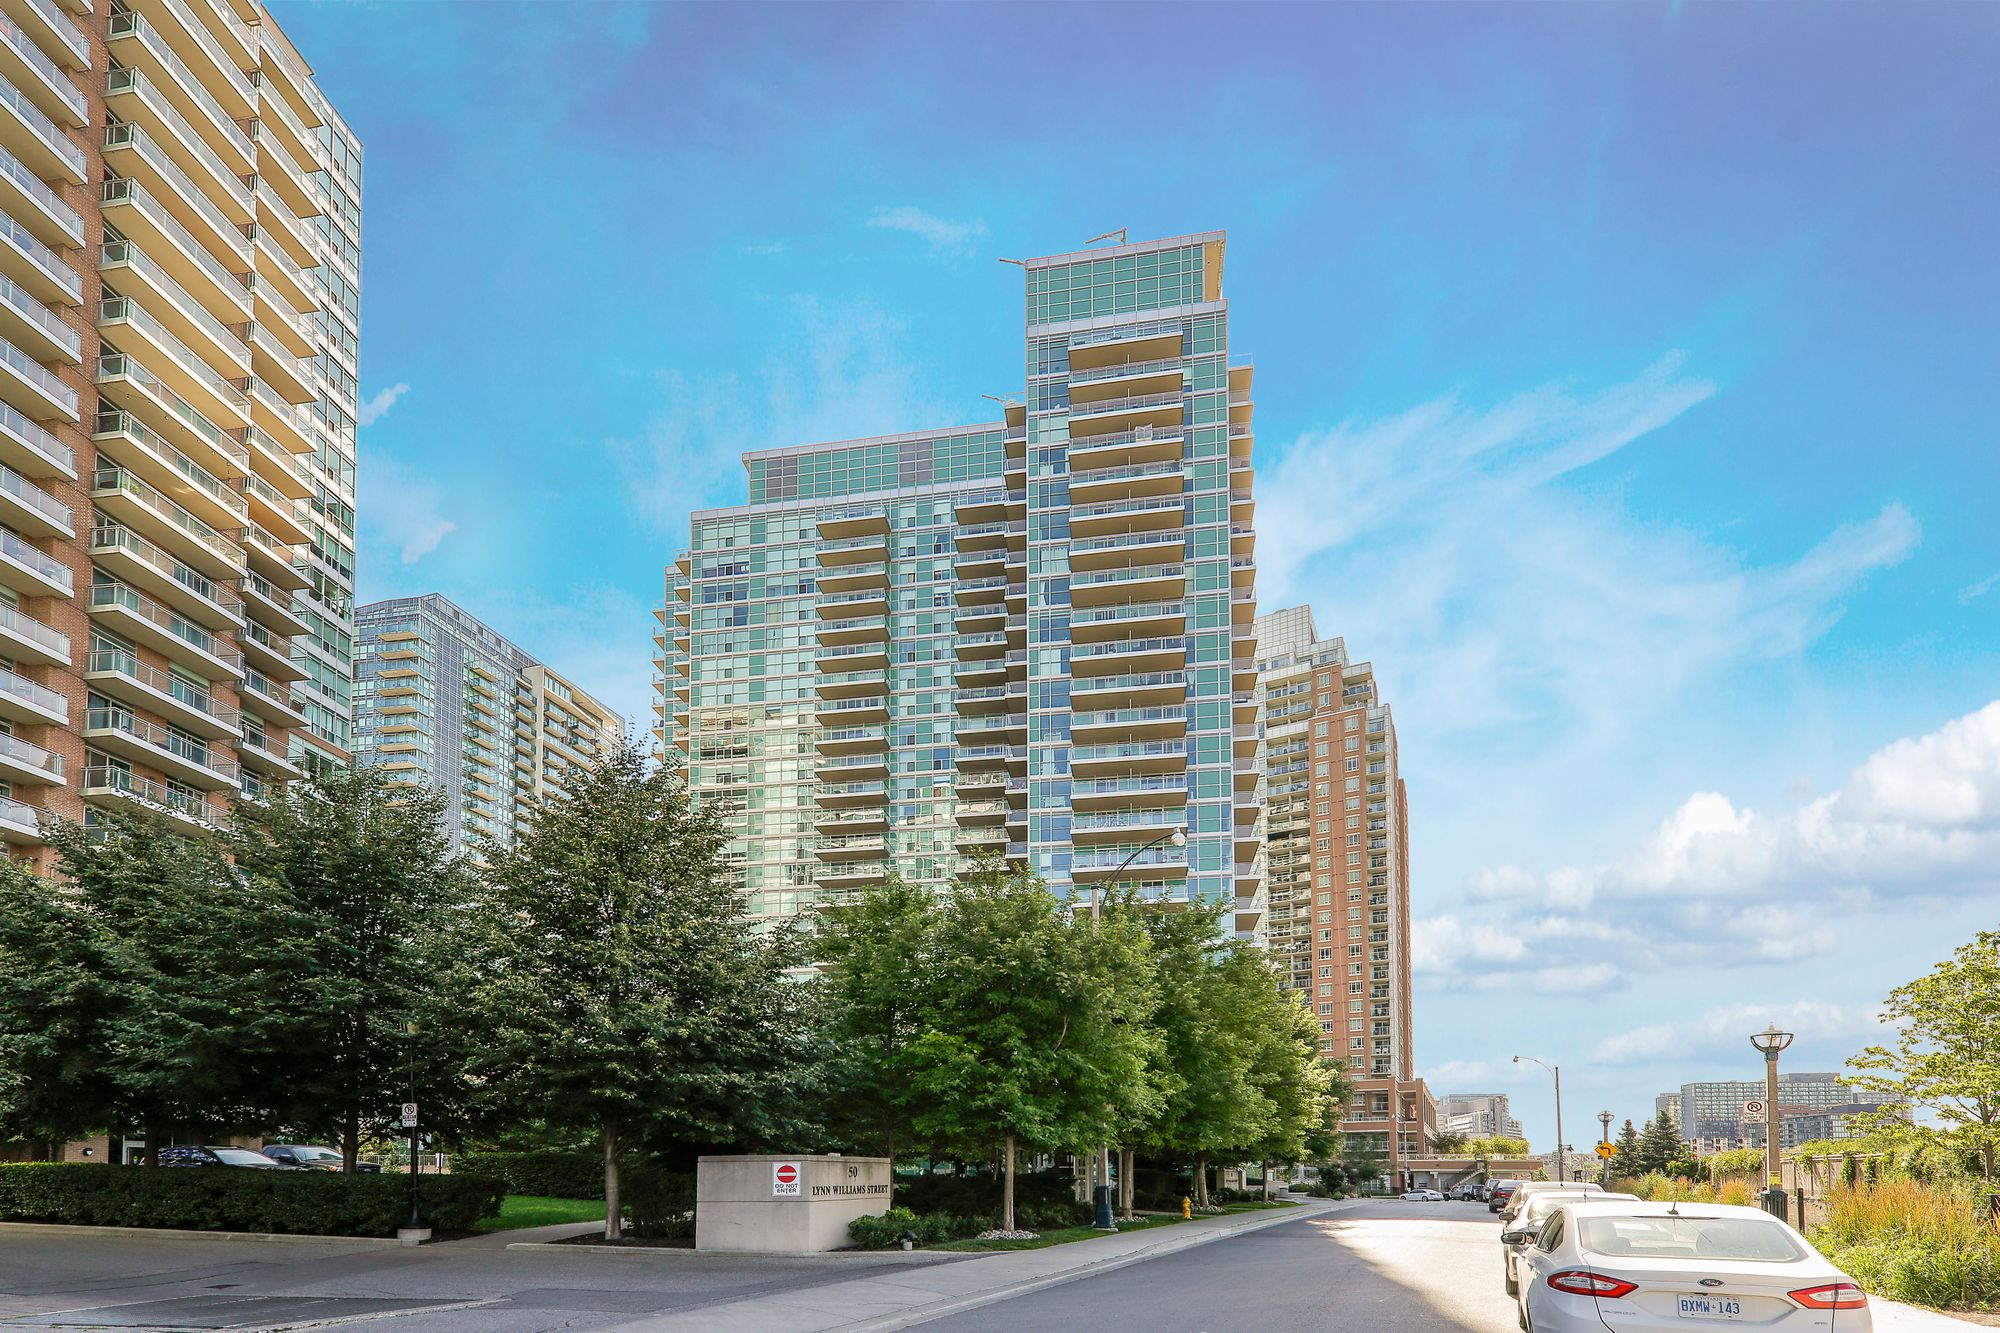 100 Western Battery Rd. This condo at Vibe at Liberty Village is located in  West End, Toronto - image #2 of 8 by Strata.ca